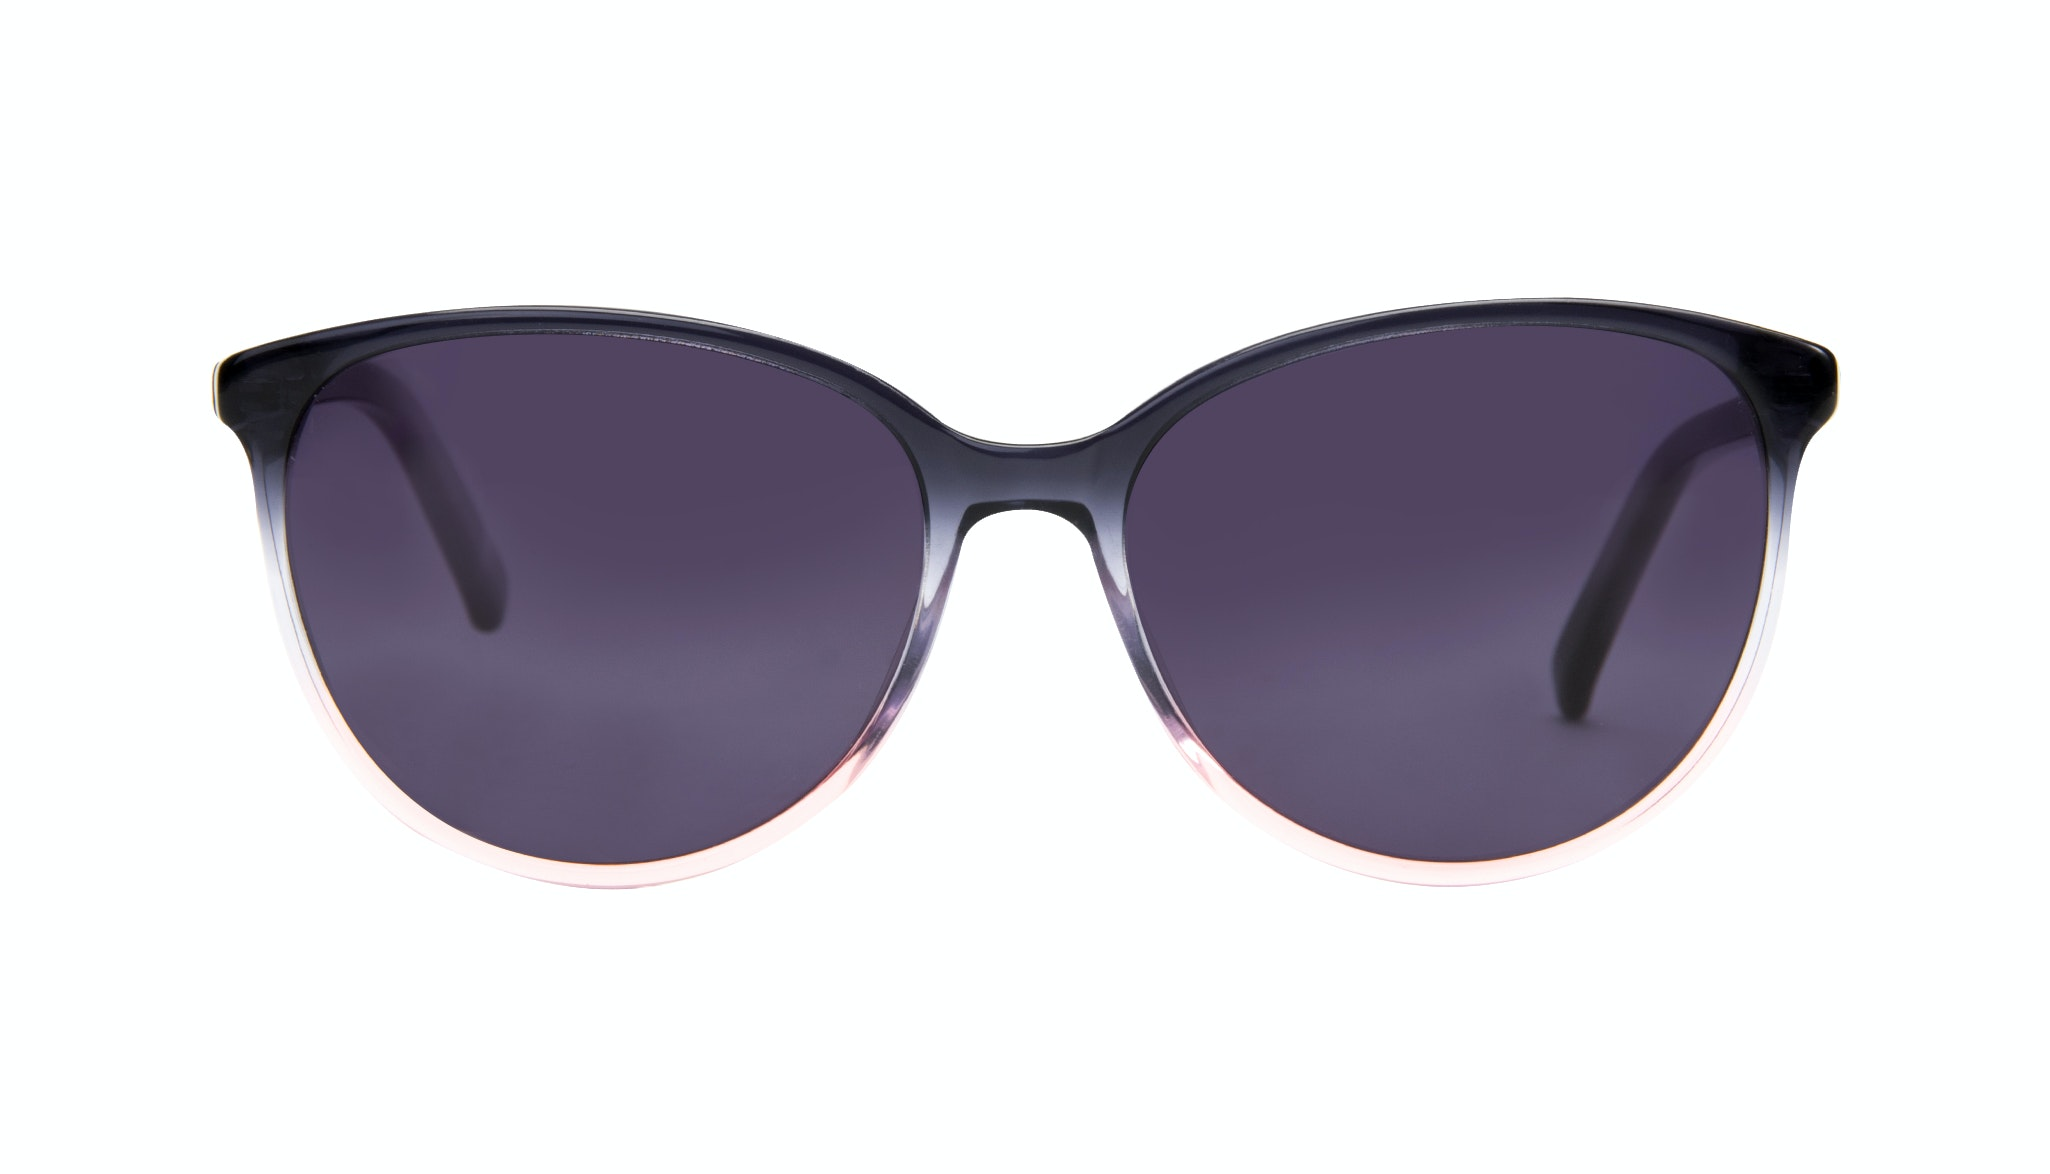 Affordable Fashion Glasses Cat Eye Round Sunglasses Women Imagine Pink Dust